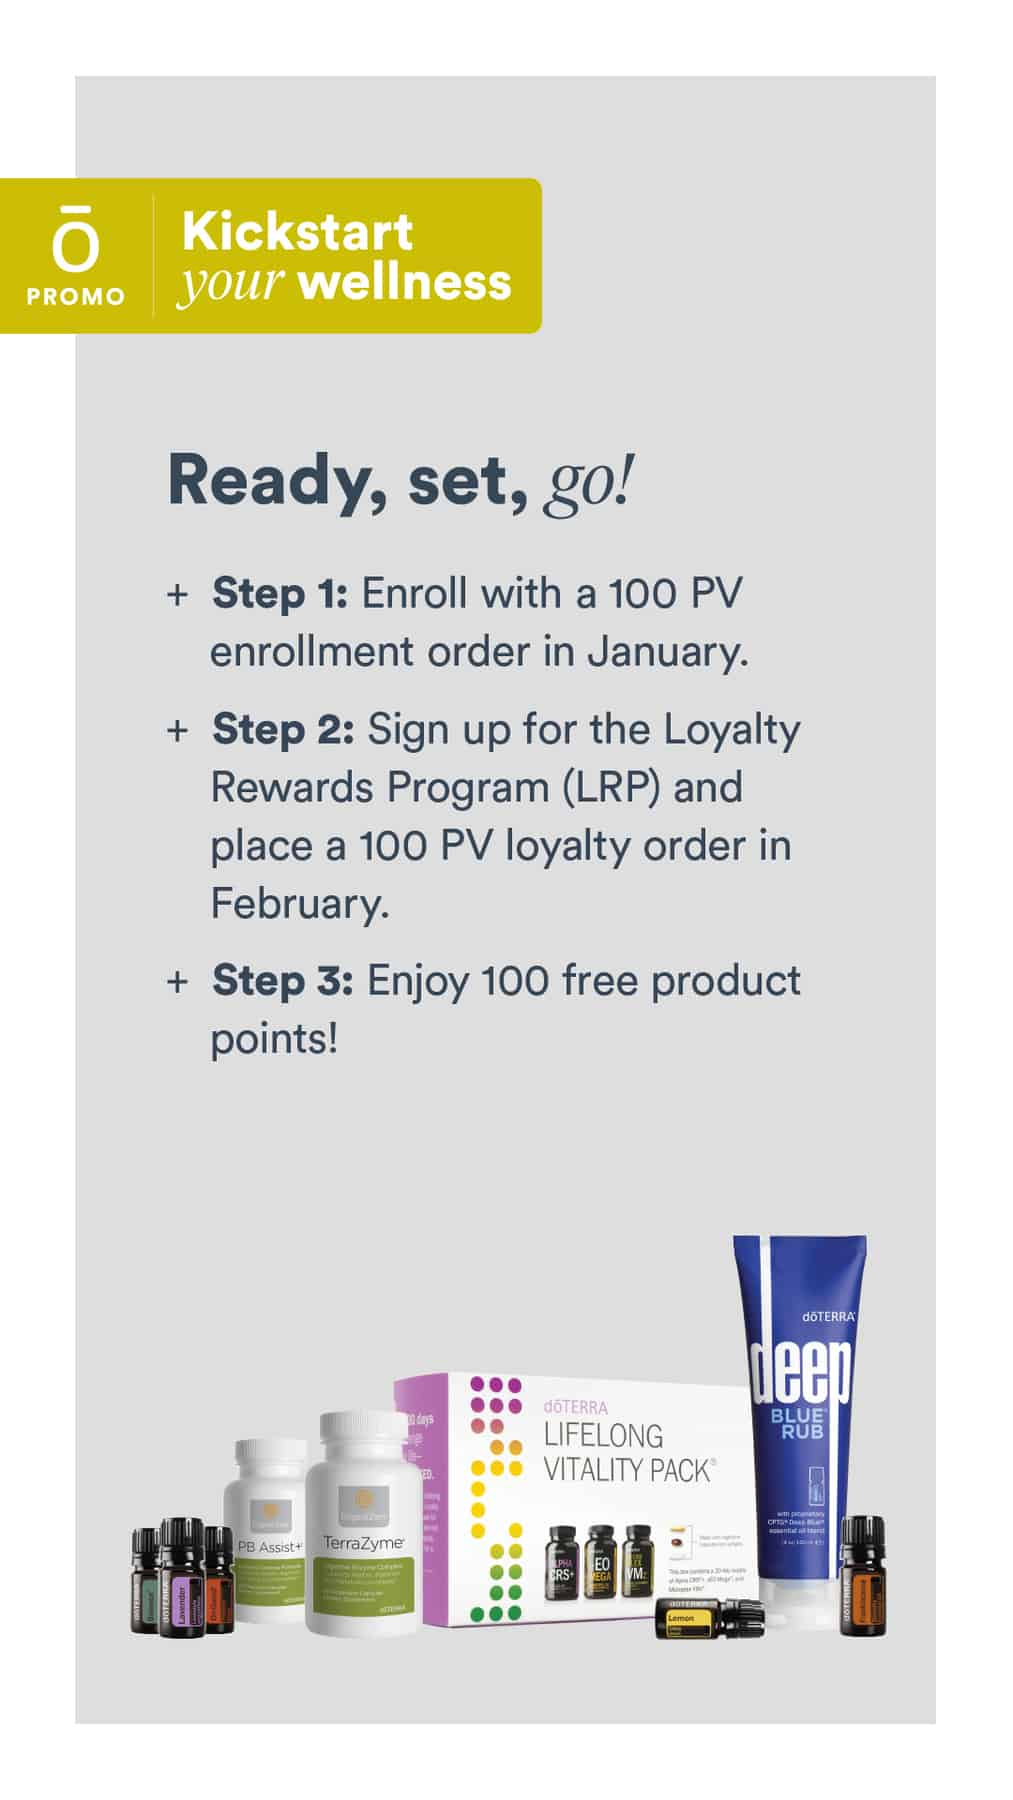 #1 - Join doTERRA with a 100 PV enrollment order in January 2020. #2 - Sign up for the Loyalty Rewards Program (LRP) and place a 100 PV loyalty order in February. #3- Enjoy 100 free product points!